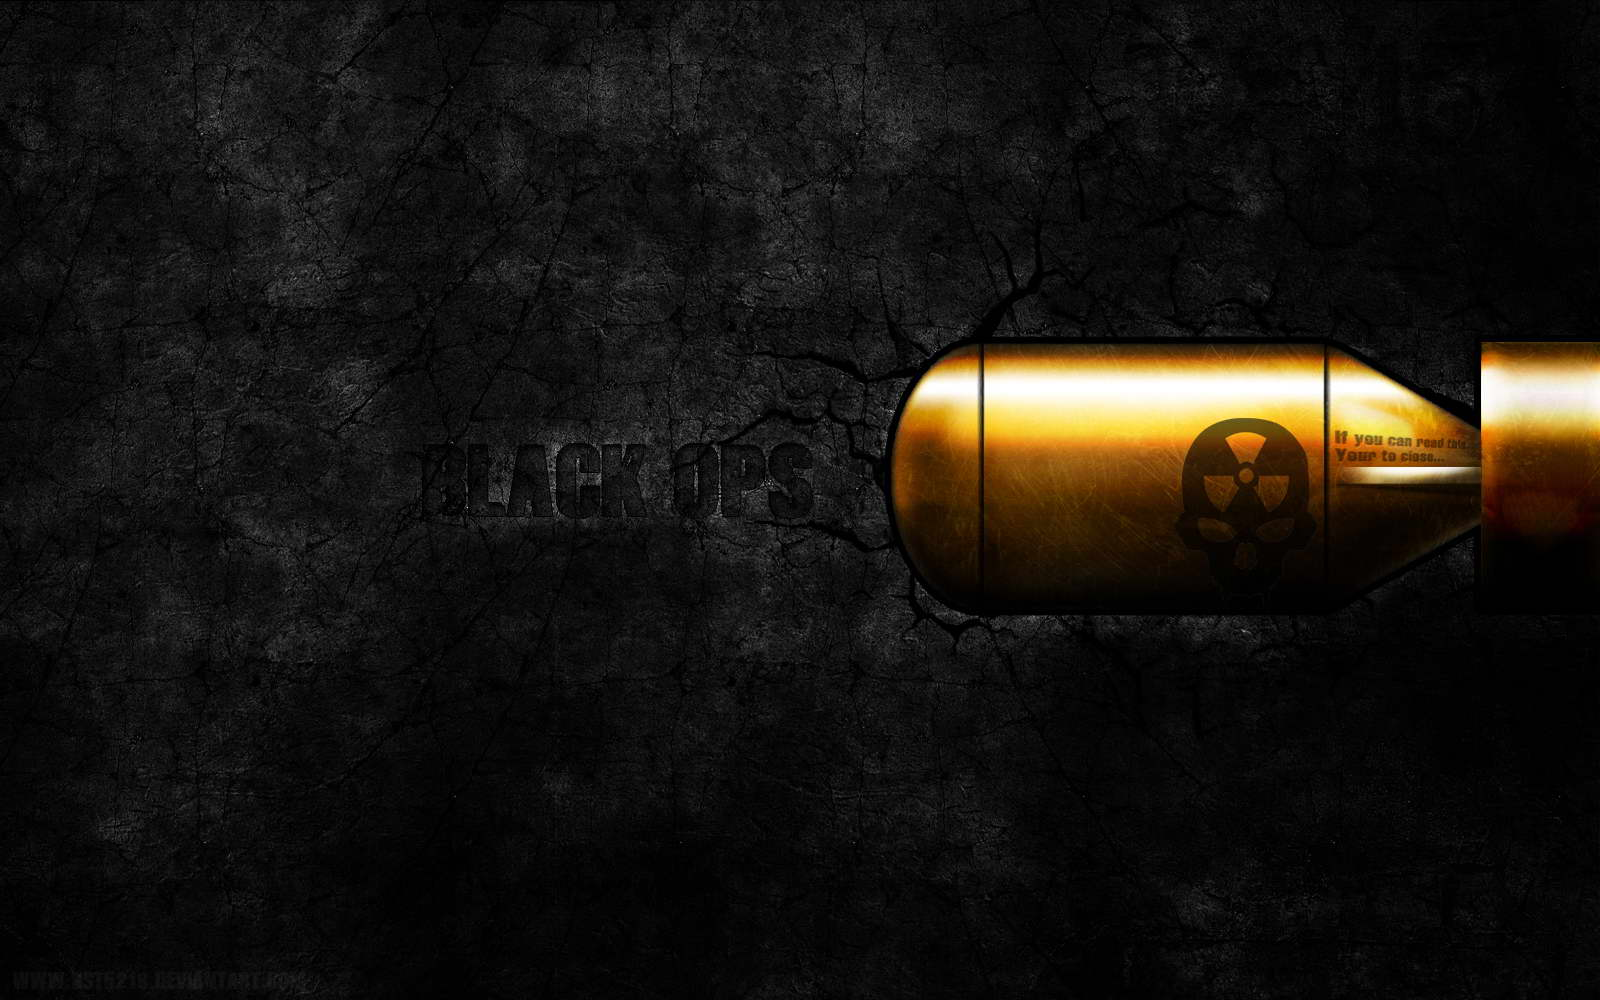 Call-Of-Duty-Black-Ops-Images-by-Maximilian-Meyer-on-FeelGrafix-wallpaper-wp3403657